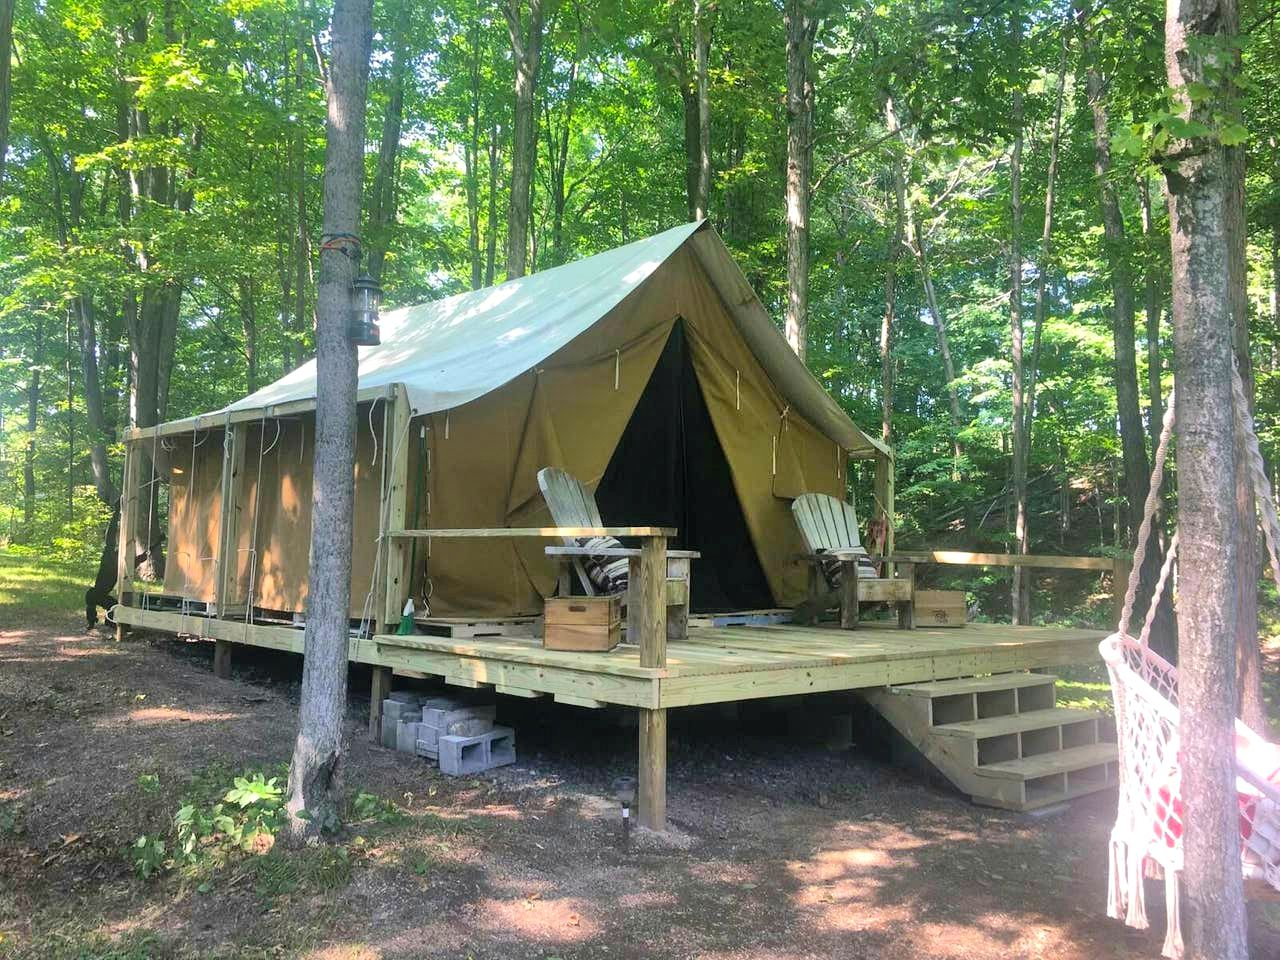 Safari Tents (Rushville, New York, United States)